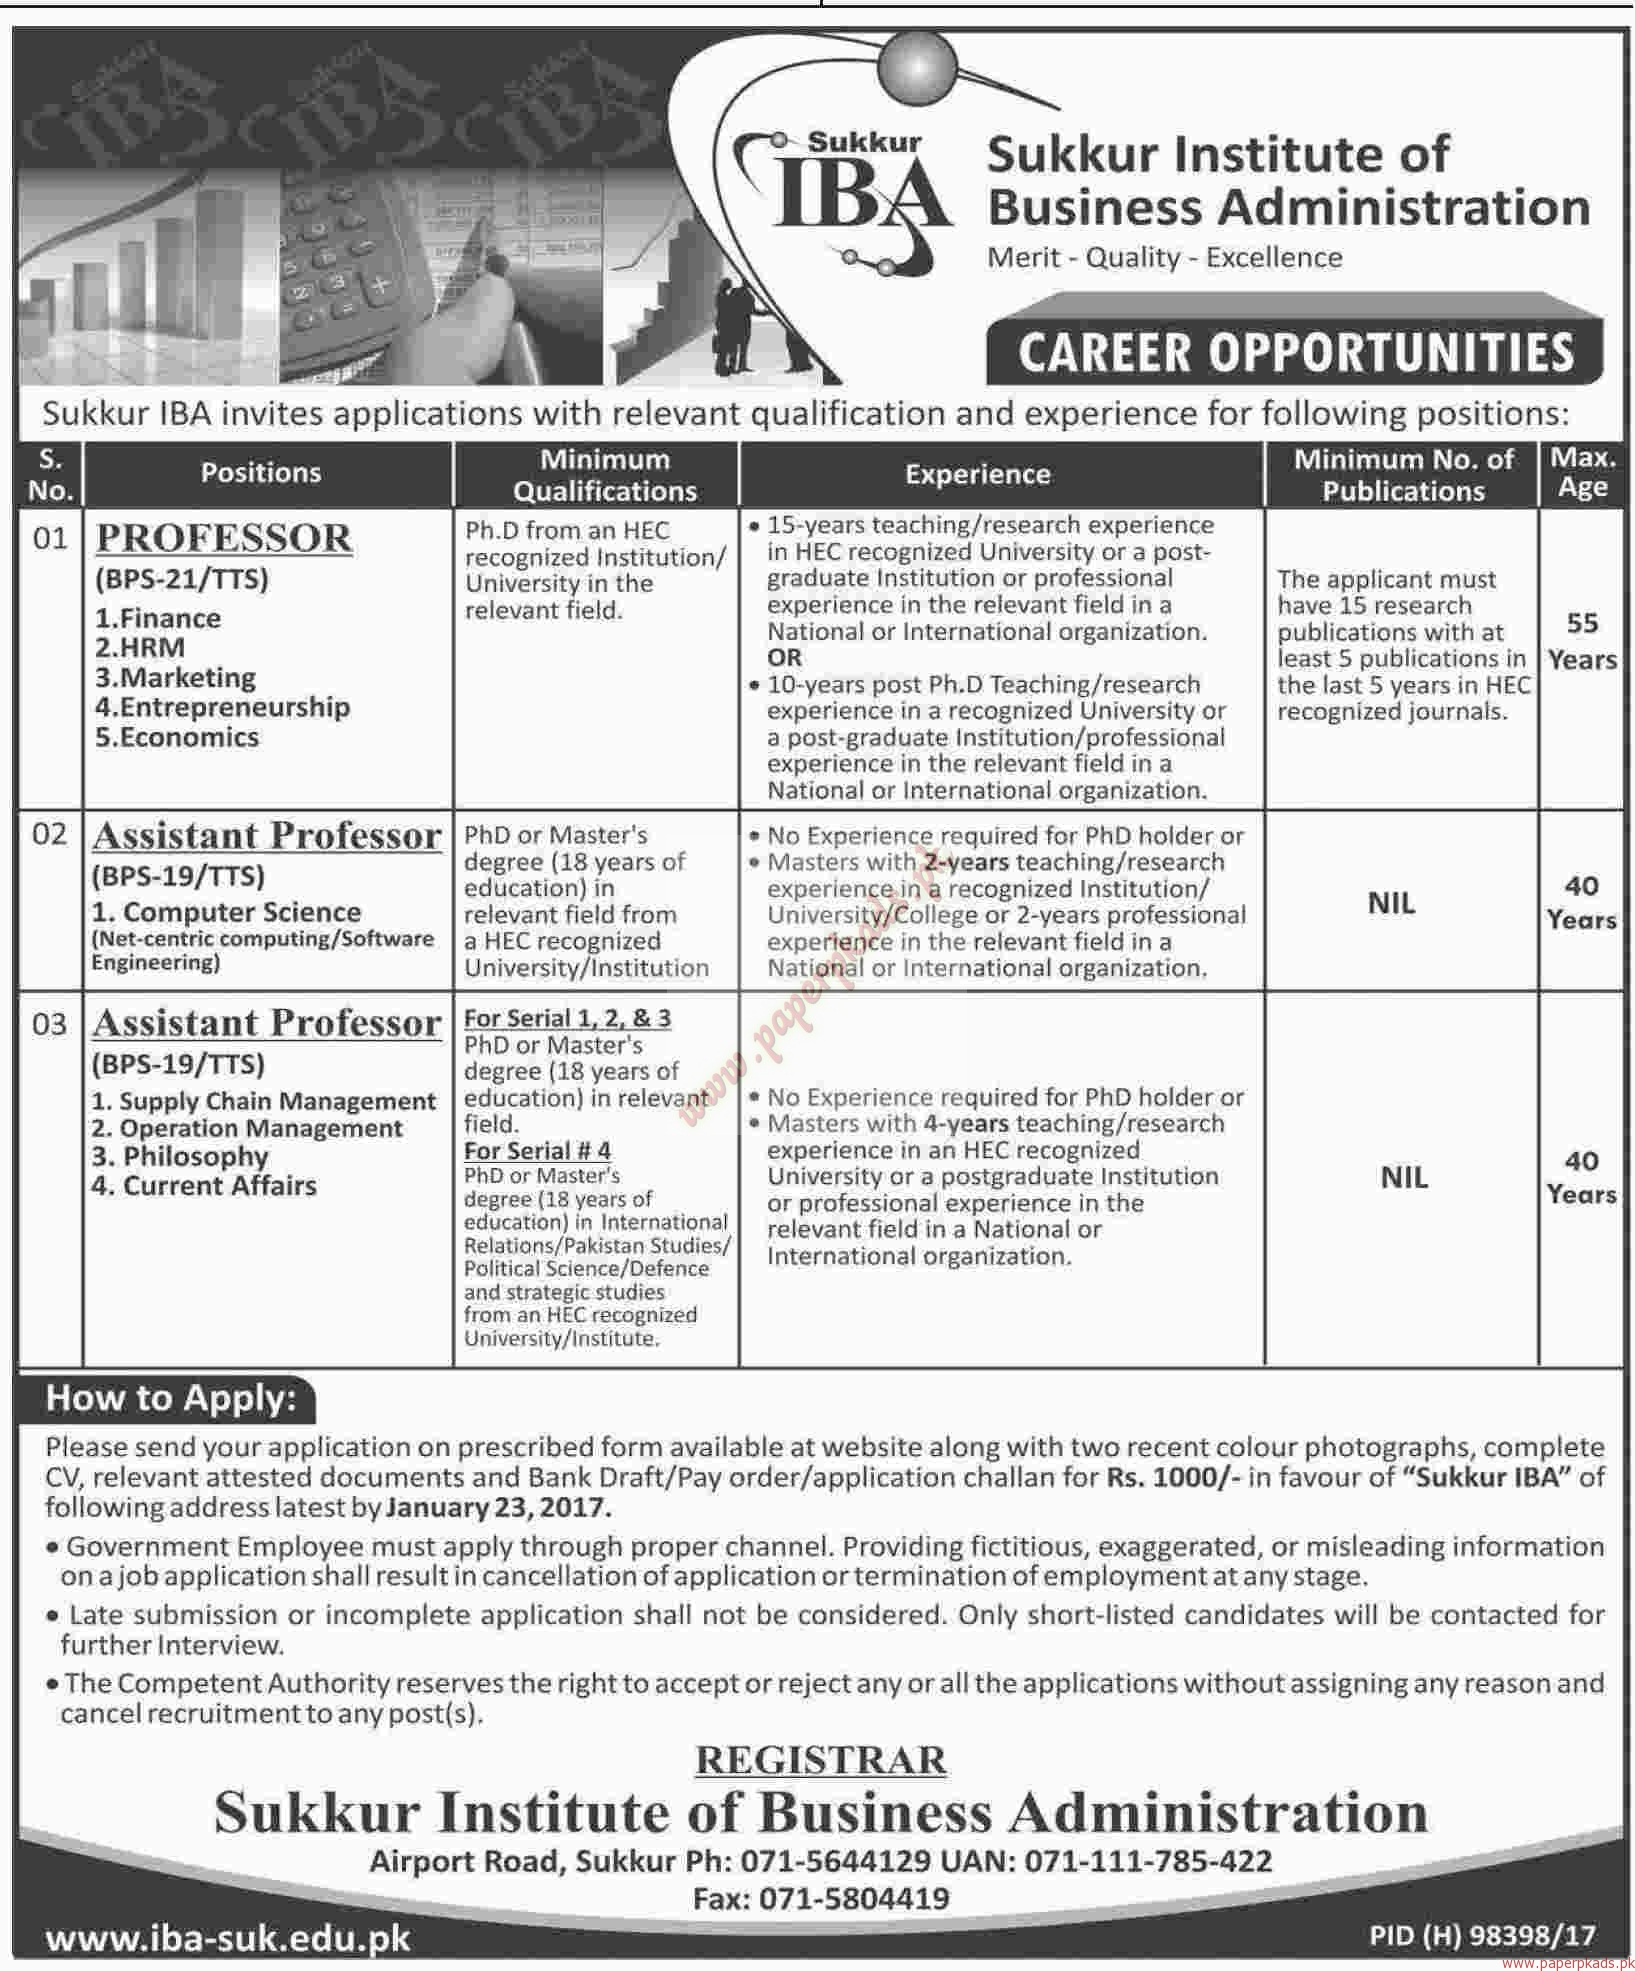 Sukkur Institute of Business Administration Jobs 2